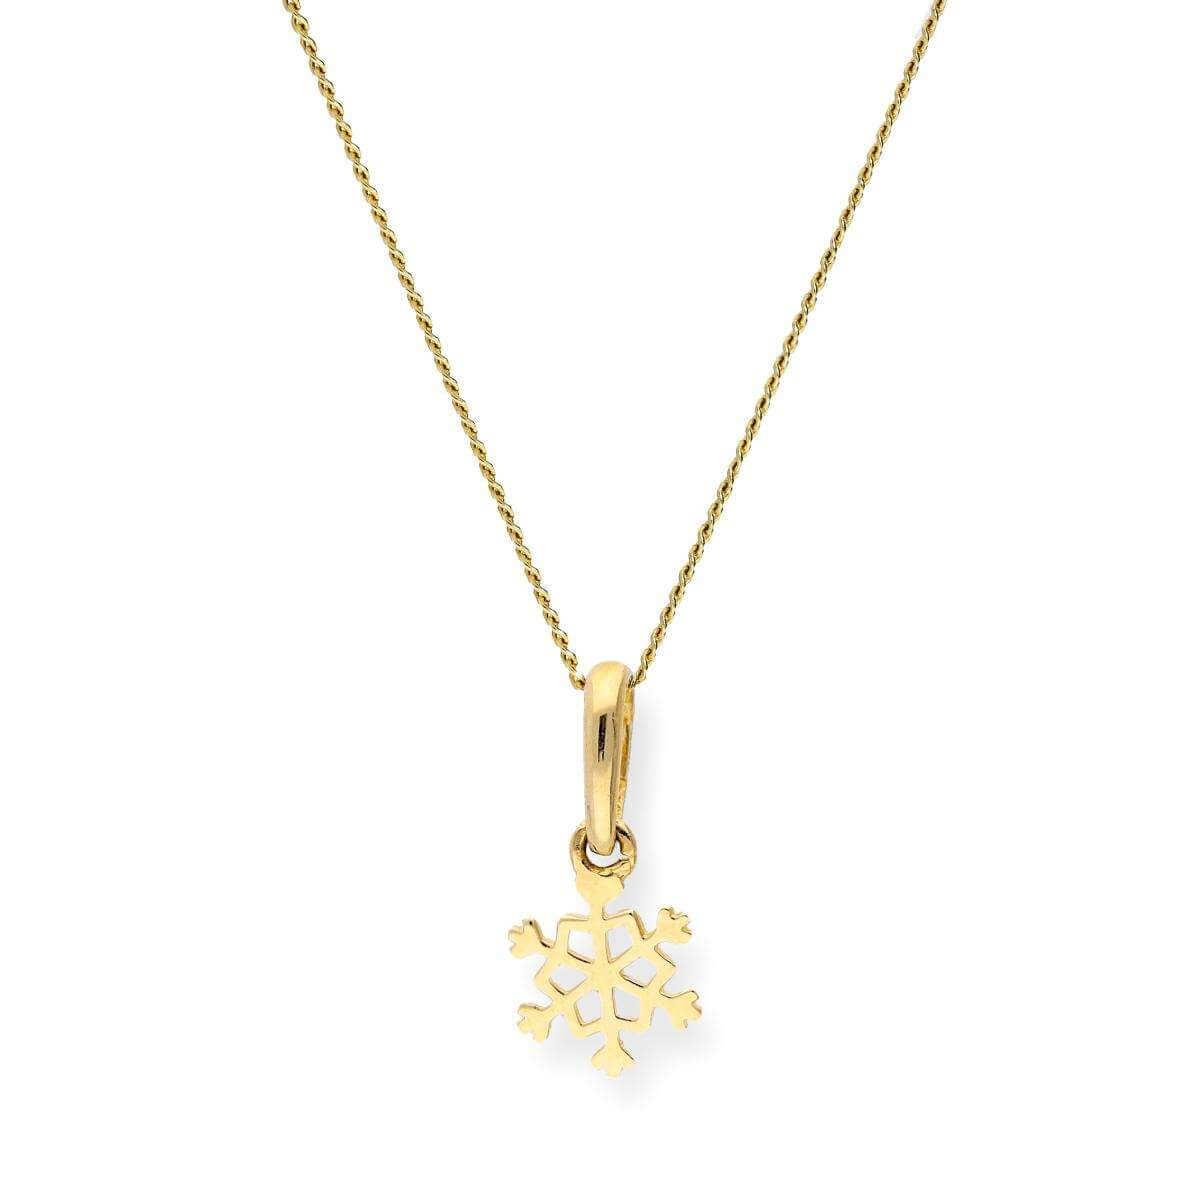 9ct gold snowflake pendant on chain sayerslondon 9ct gold snowflake pendant on chain aloadofball Images